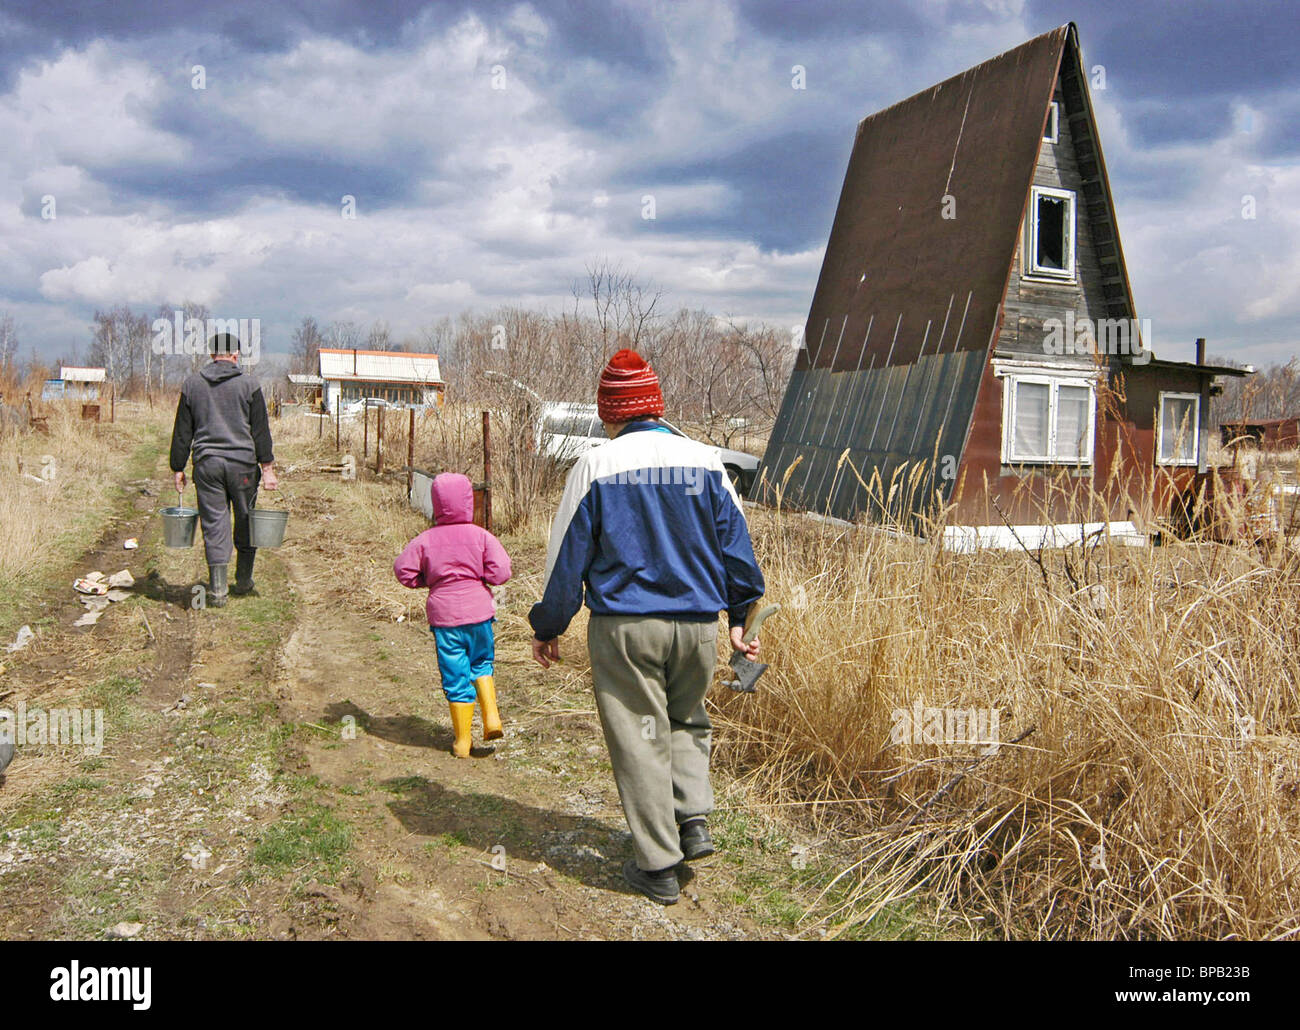 Russians spend May holidays at the country houses - Stock Image